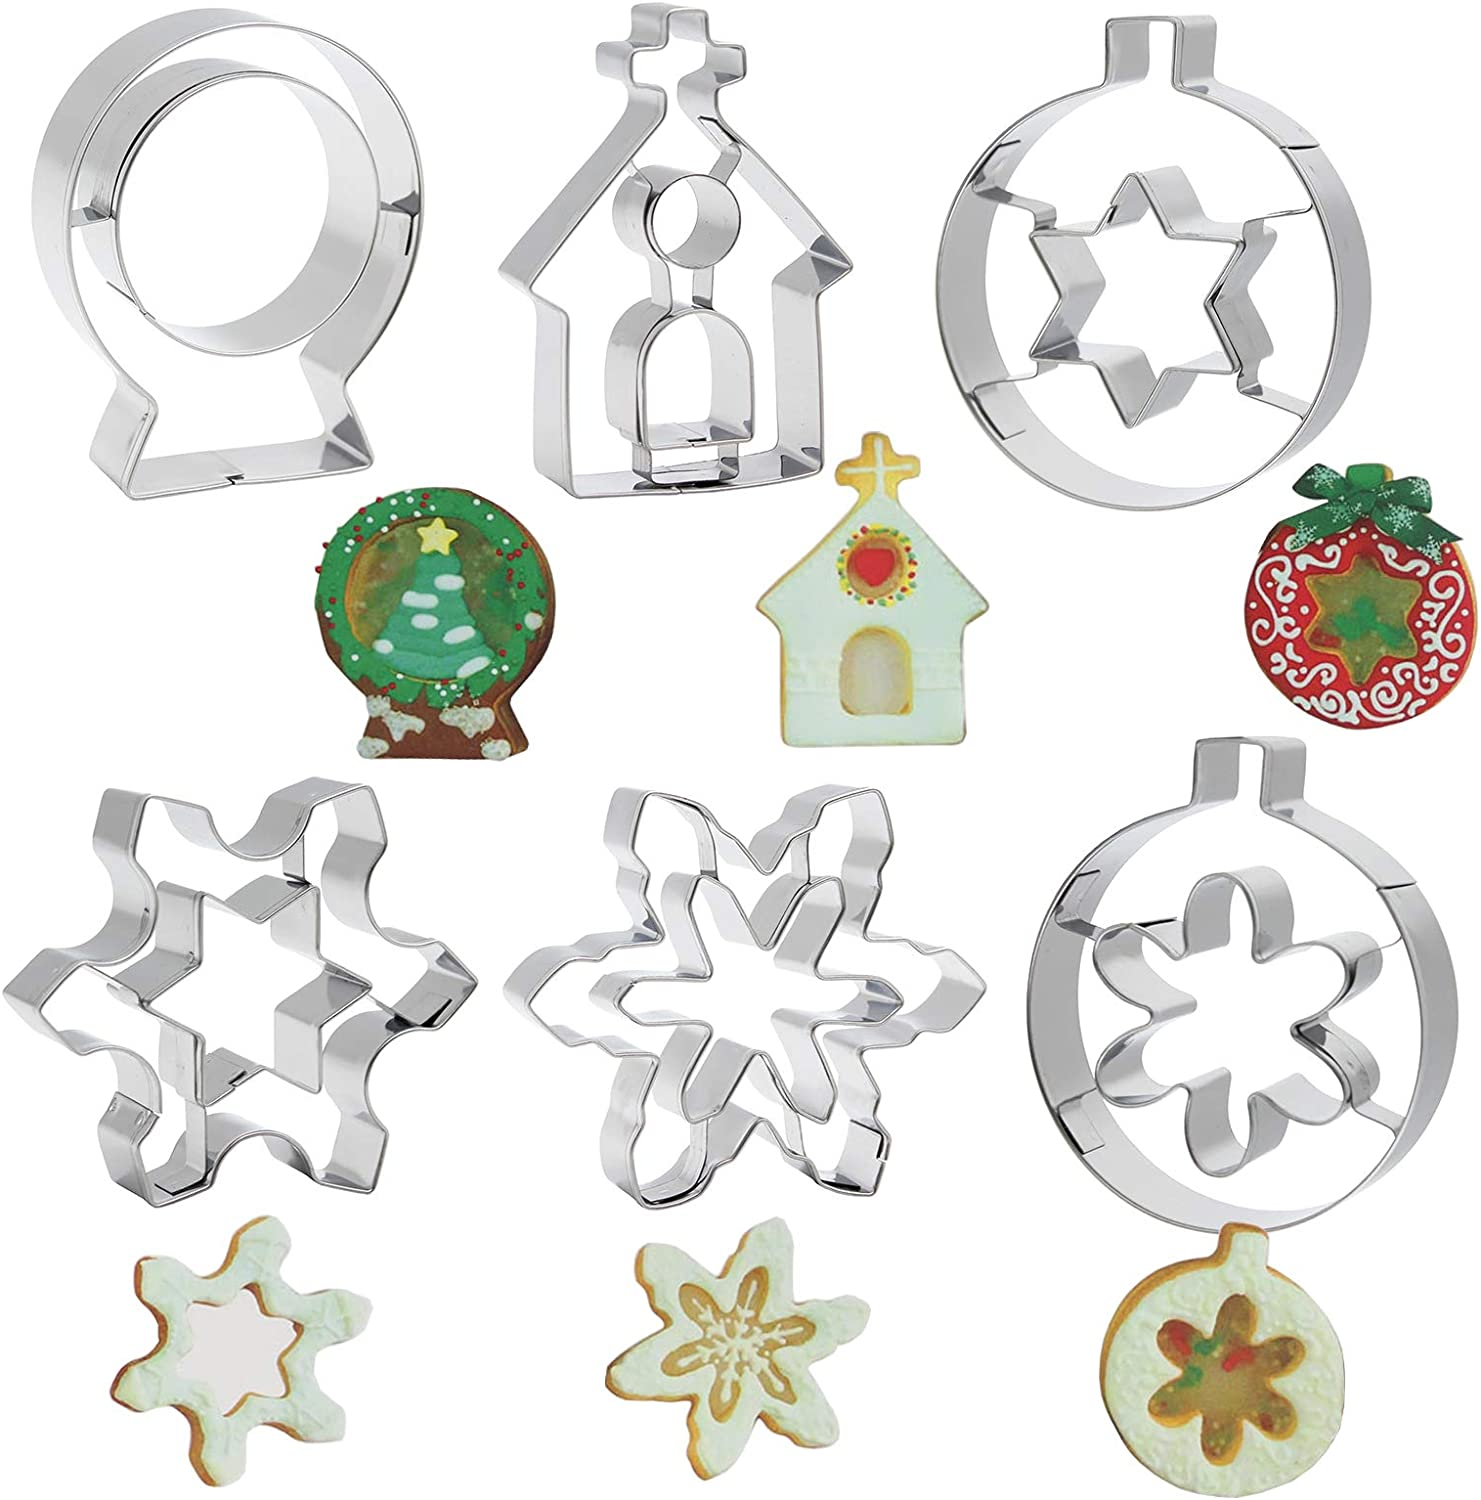 Mziart Christmas Cookie Cutter Set of 6, Stainless Steel Metal Holiday DIY Cookie Mold, Snowflake, Star, House Shapes for Home Cooking and Party Decorations